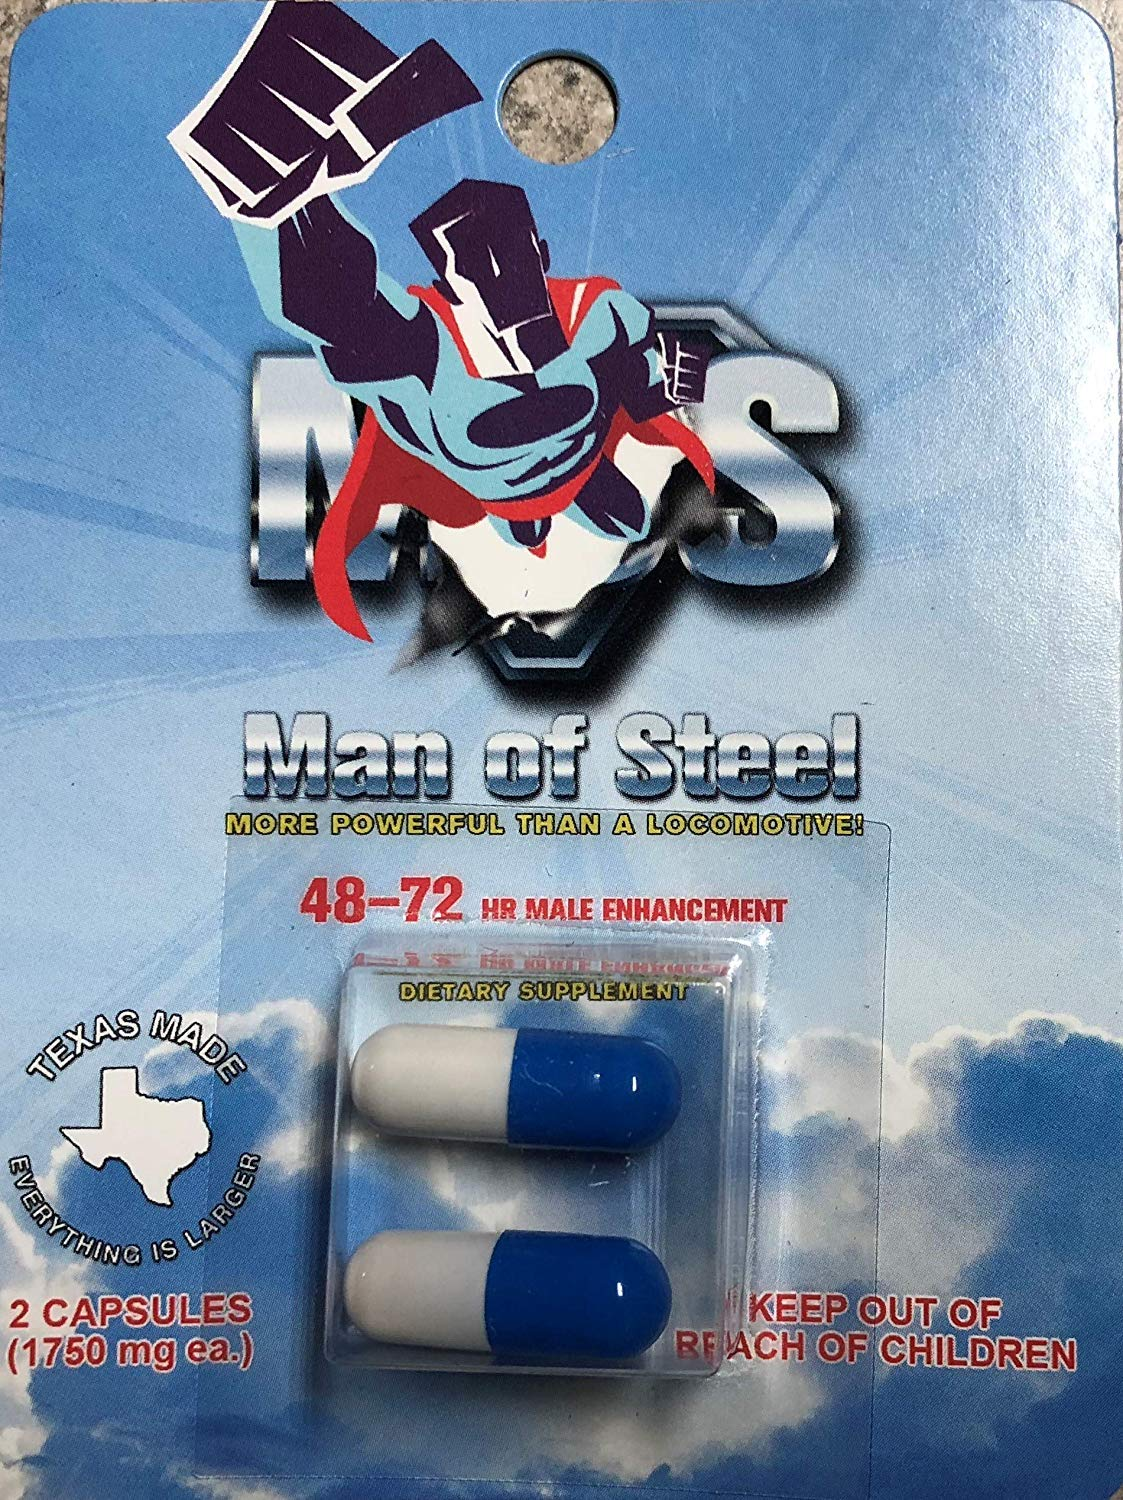 Man of Steels Don Juan ME-72 HR Extreme - 20 Male Enhancement Pills - Texas Made